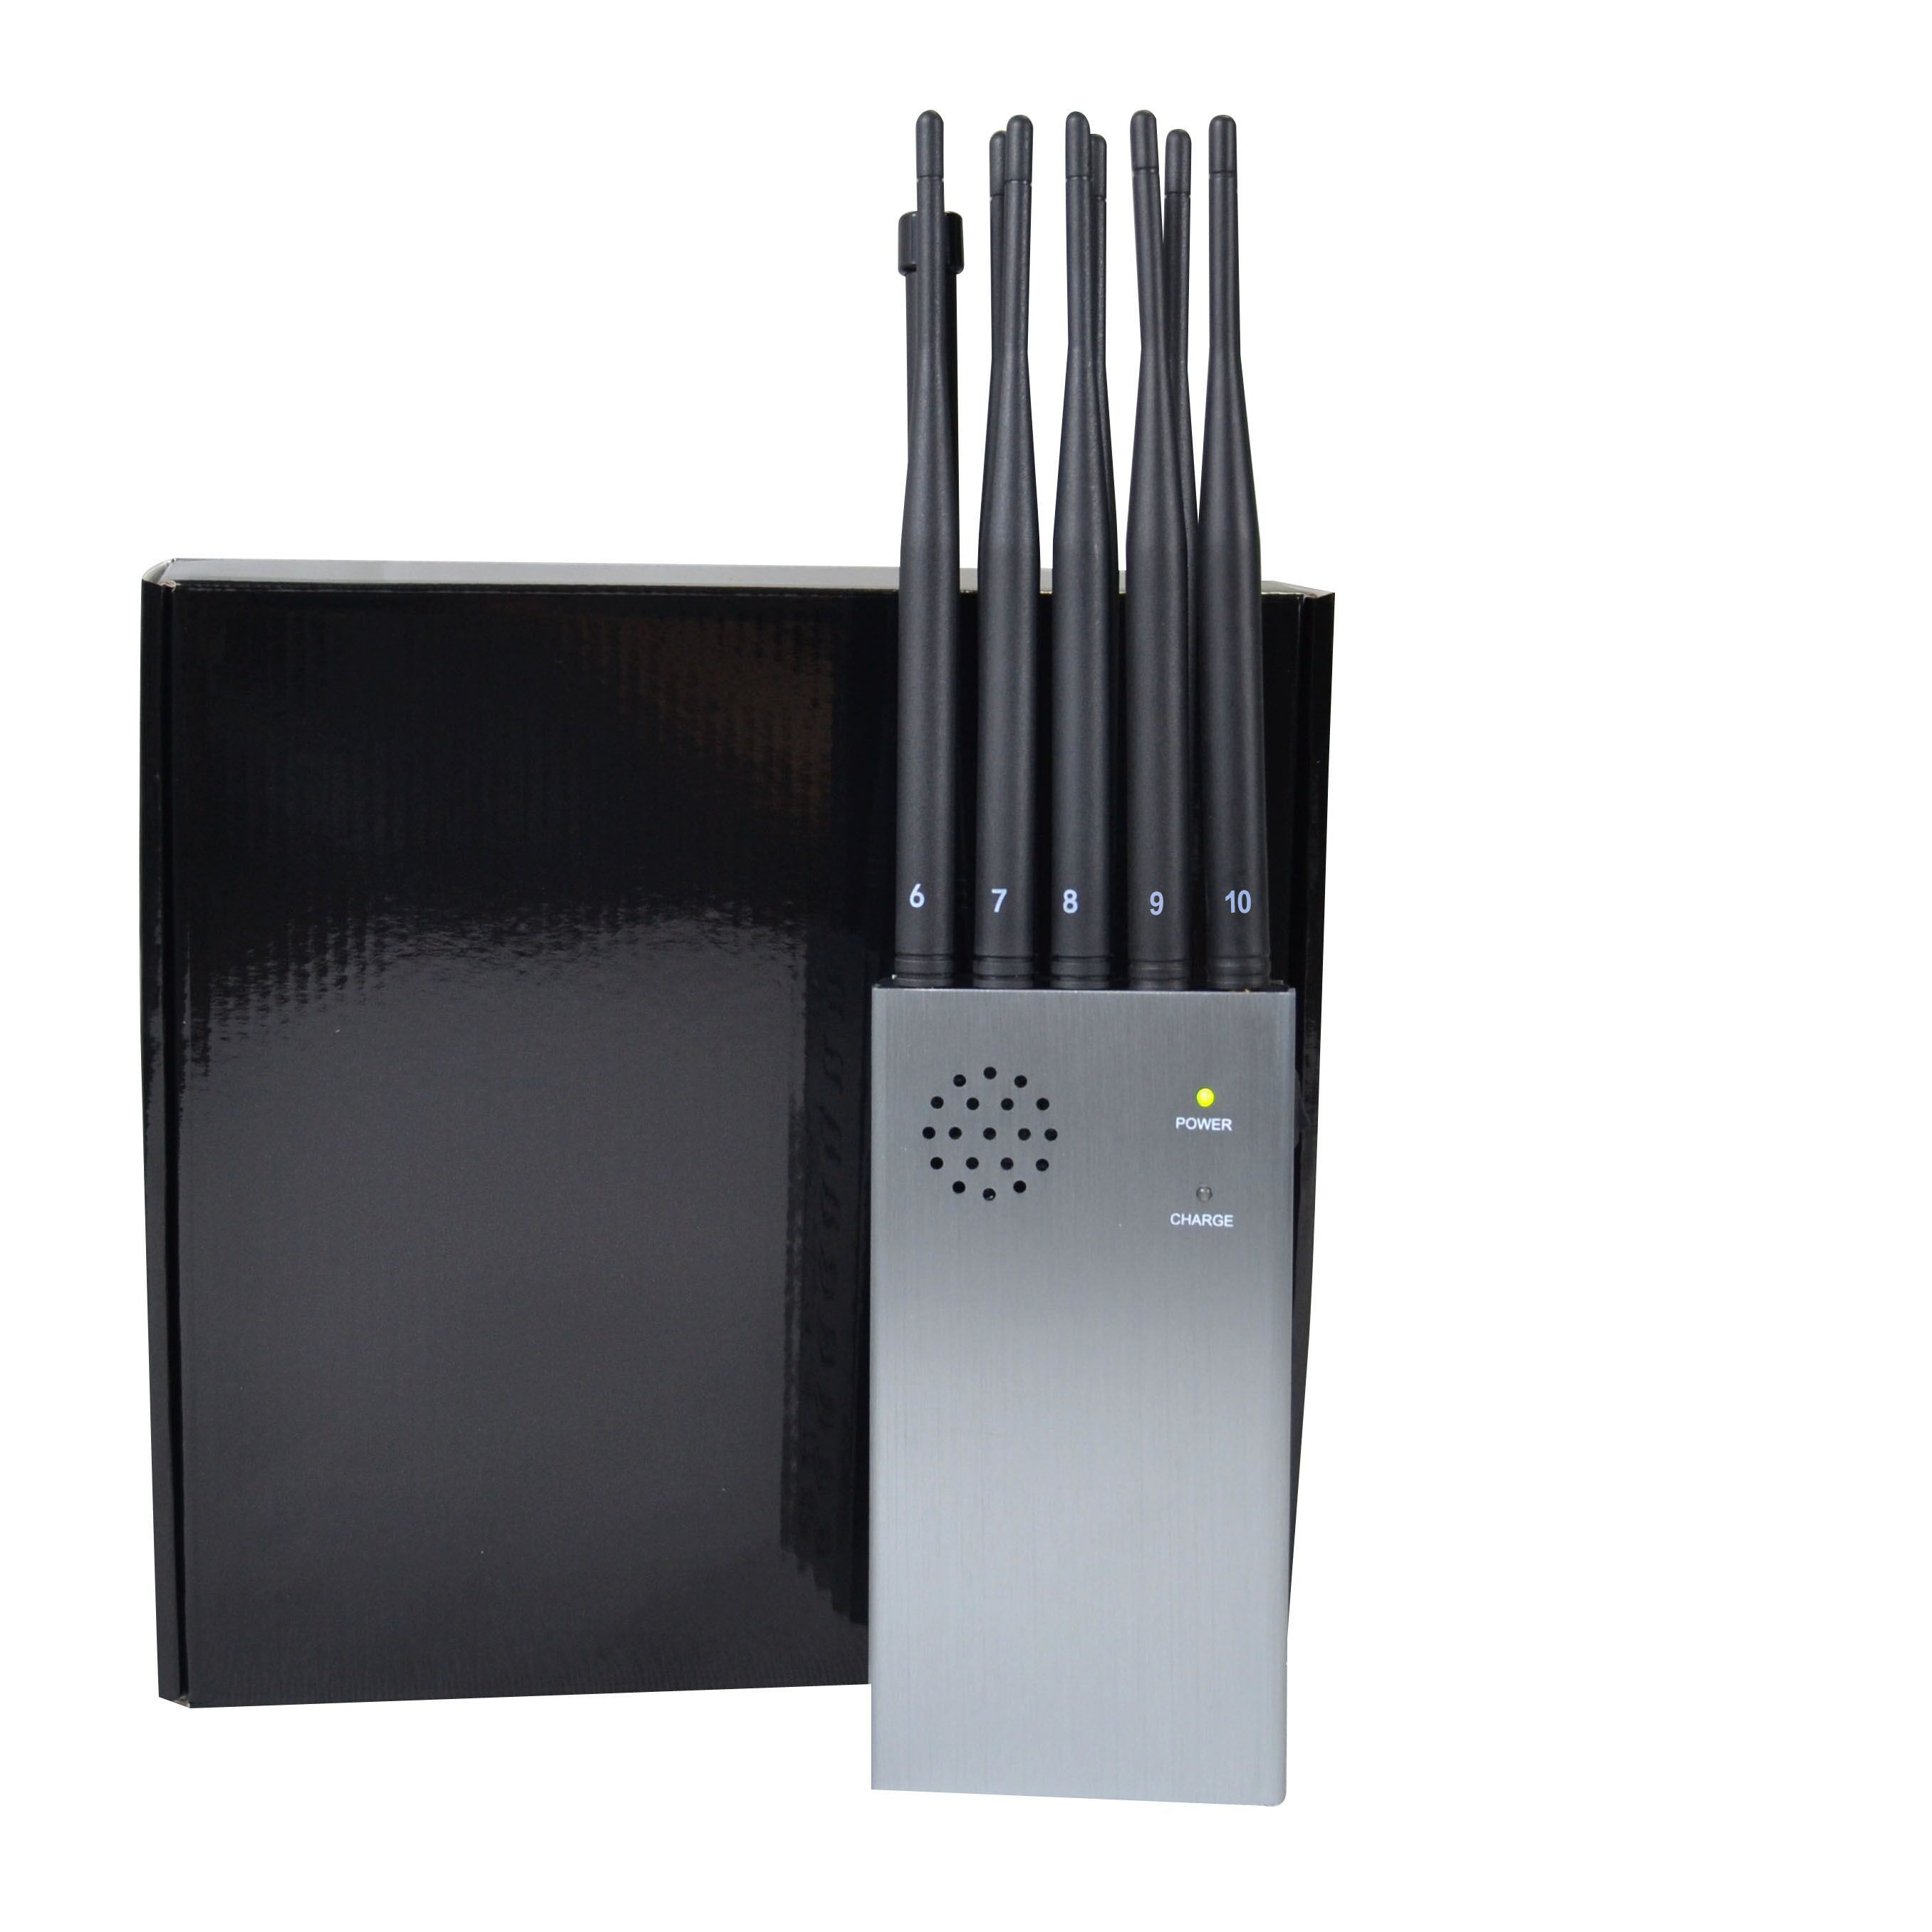 lte cellular jammer splash - China Power King Jammers of Cpjp10 with 8000mA 2g 3G 4G 5g Remote Control Jammers for 2g 3G 4G 5g Lojack - China 8000mA Battery Jammer, Large Volume Power Signal Blocker